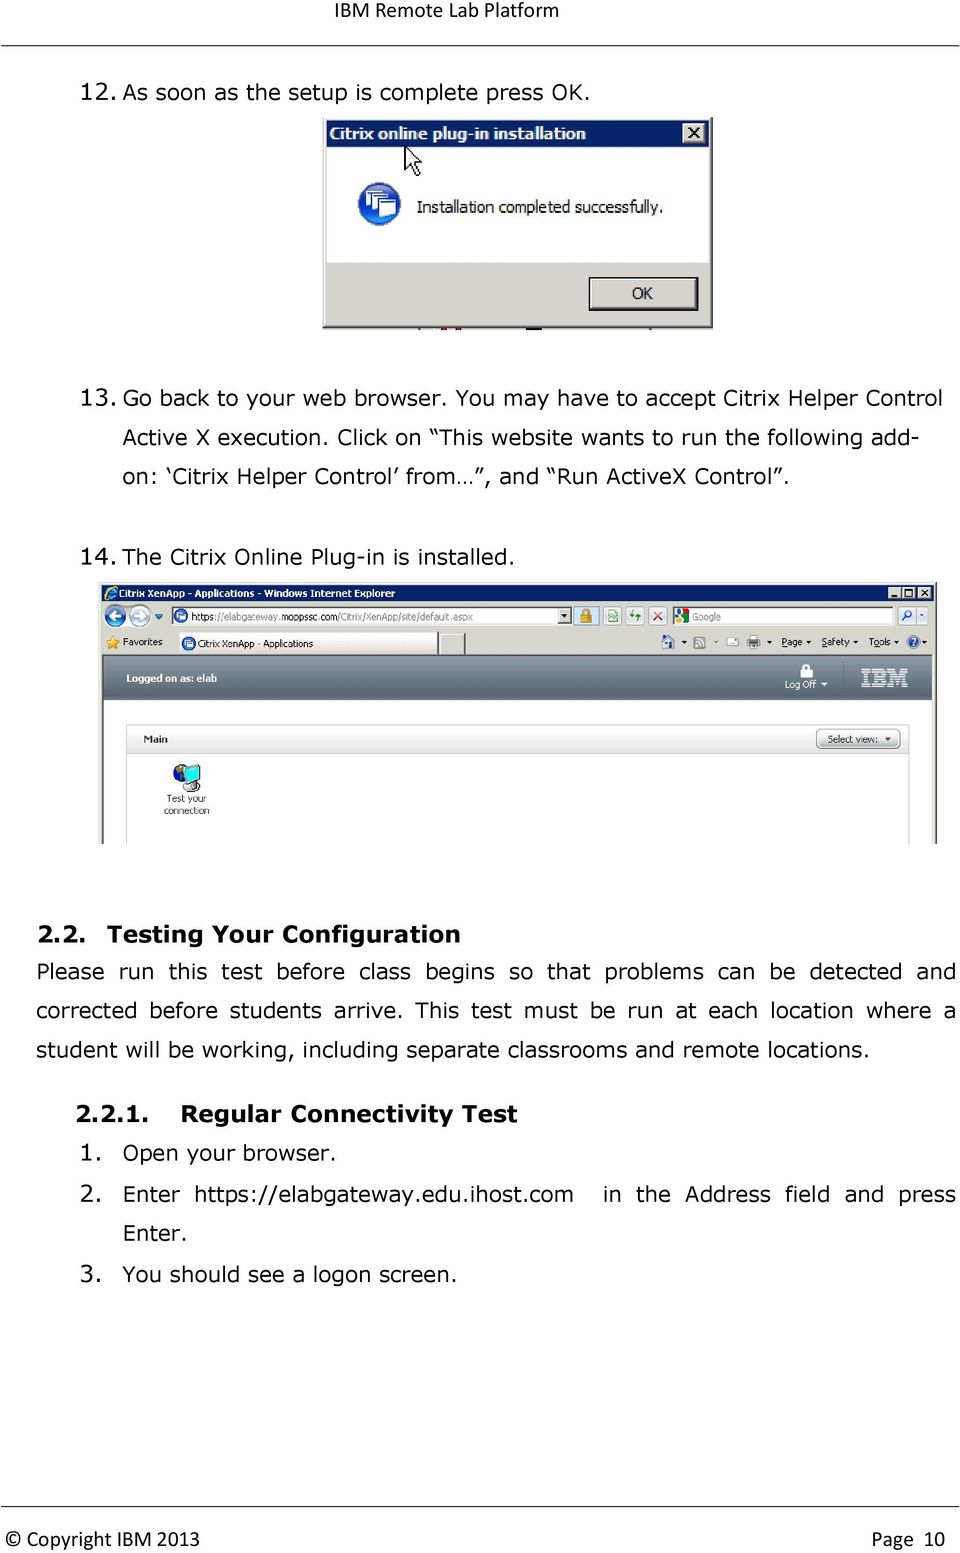 2. Testing Your Configuration Please run this test before class begins so that problems can be detected and corrected before students arrive.